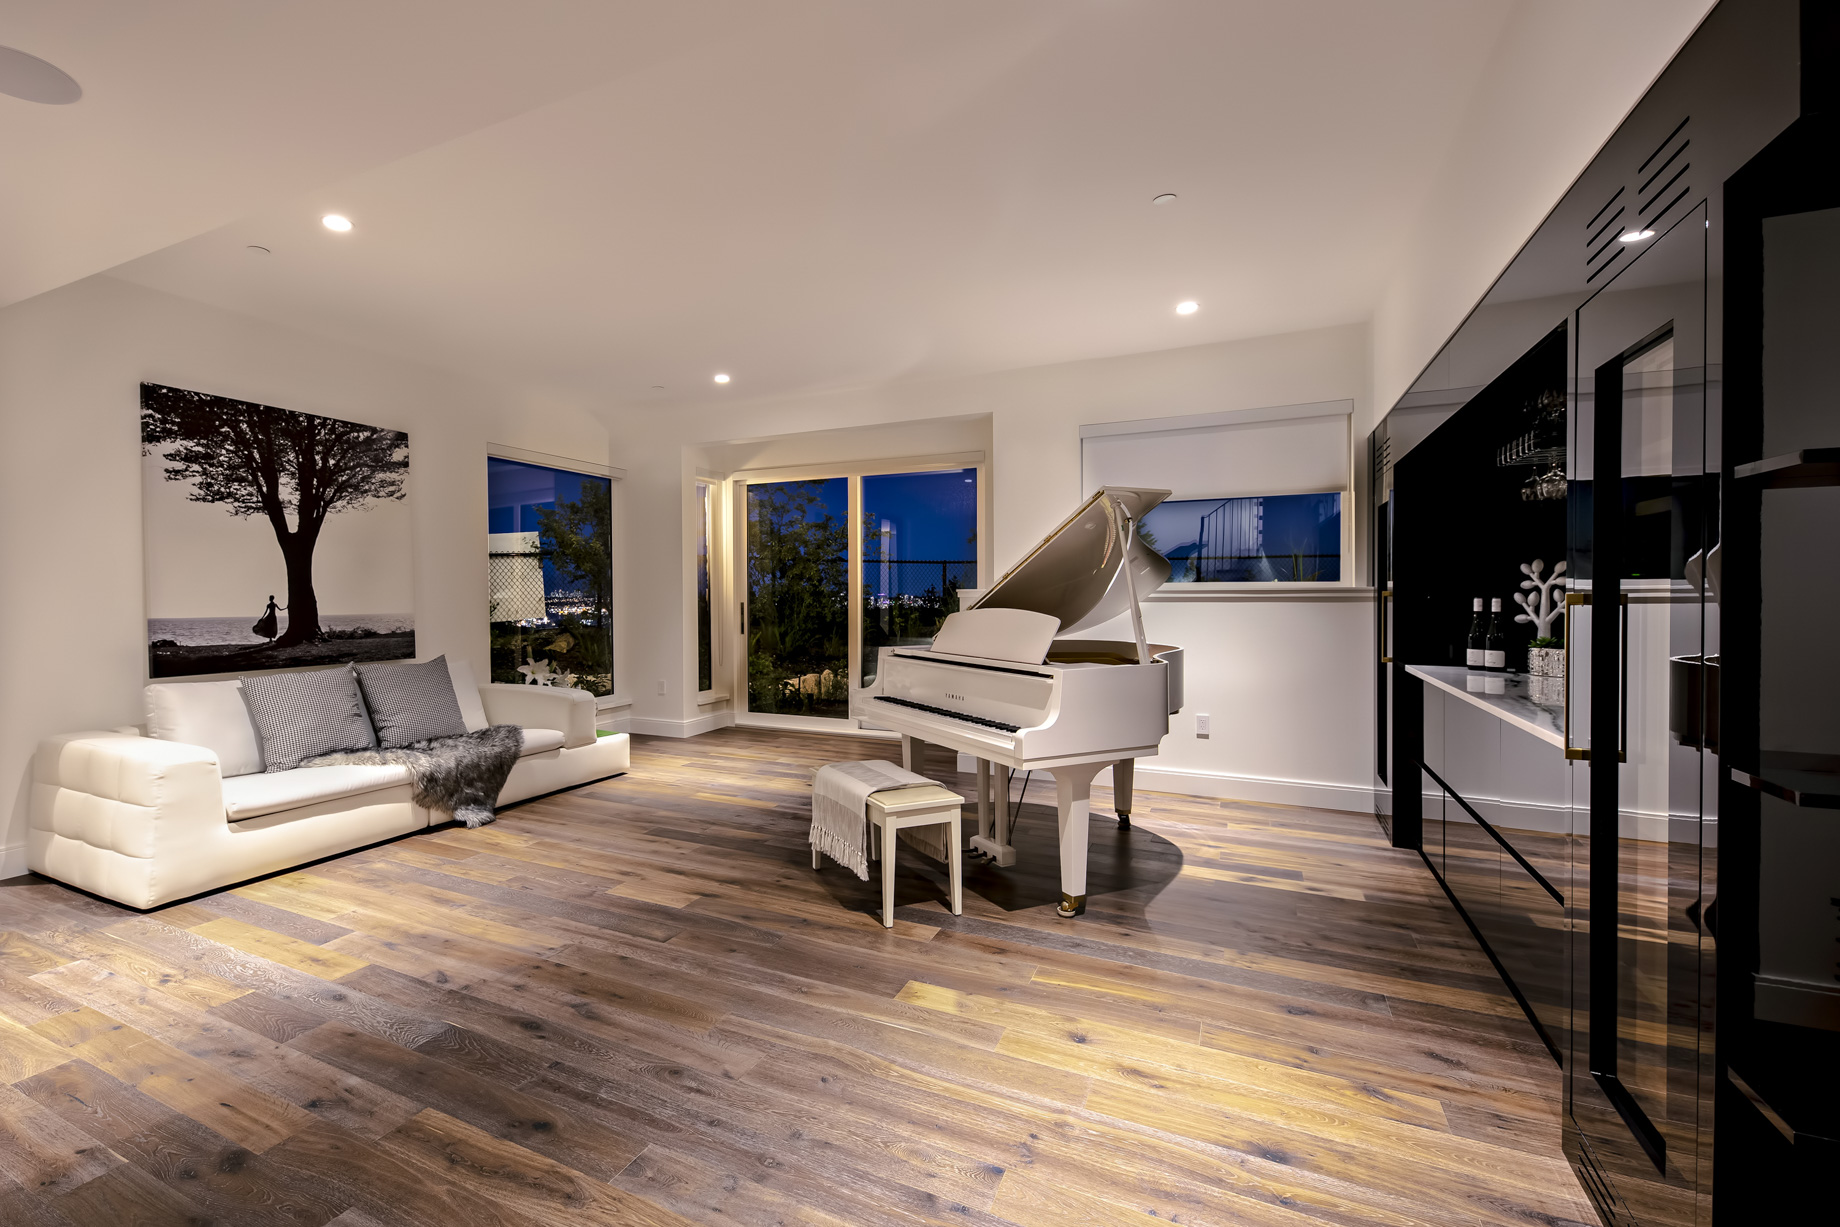 2121 Union Court, West Vancouver, BC, Canada – Entertainment Room – Luxury Real Estate – West Coast Modern Home